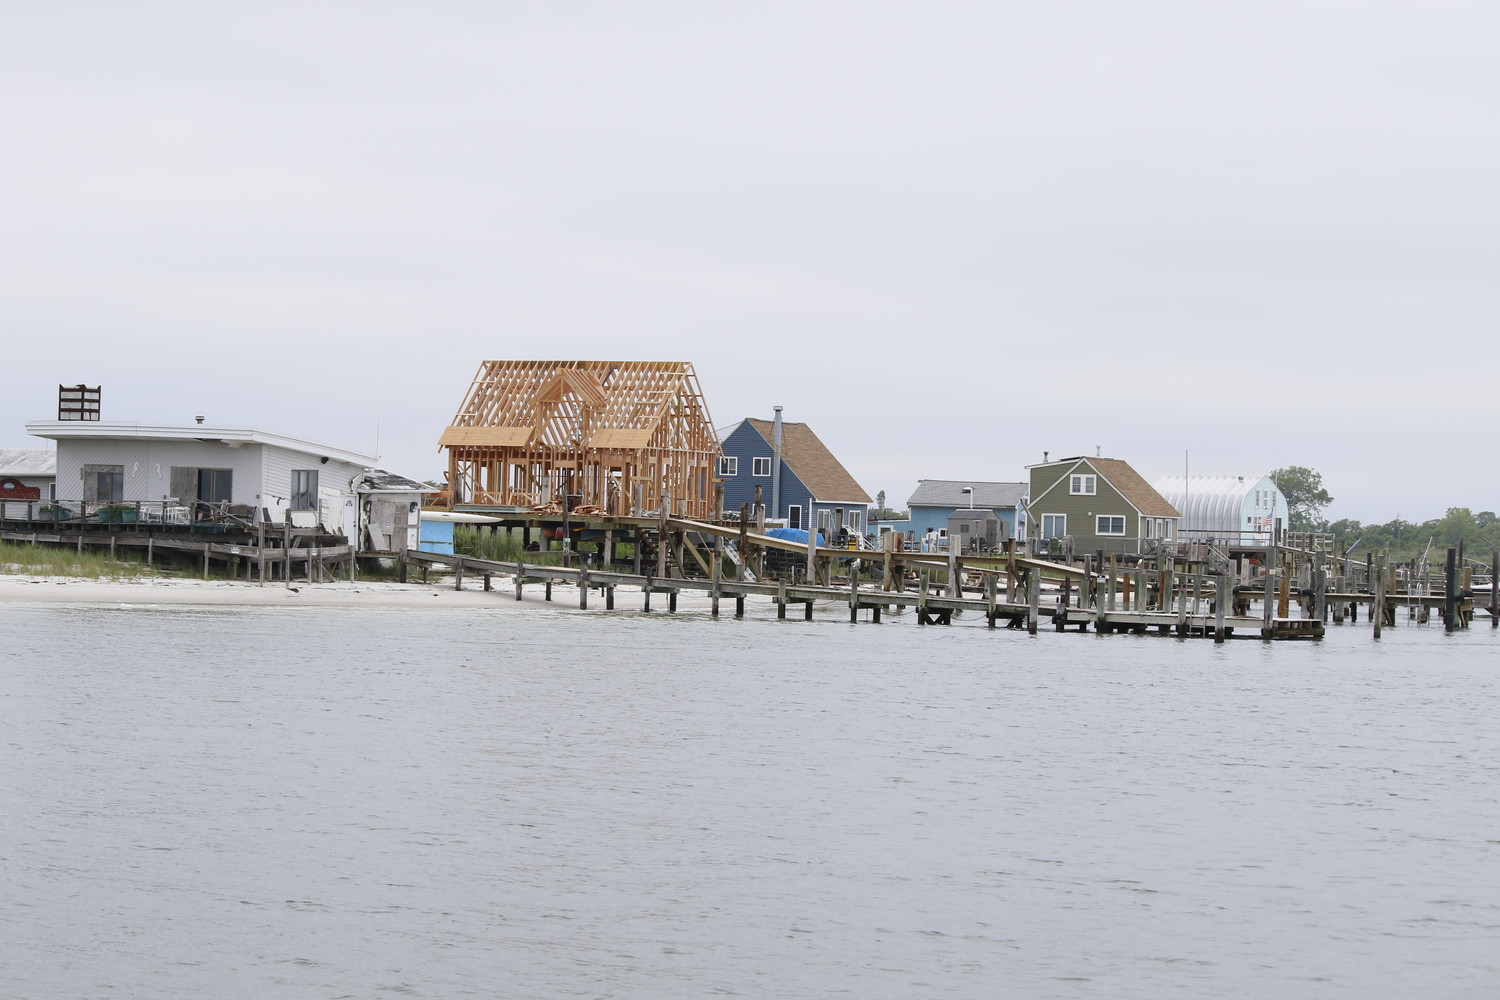 The bay houses of Meadow Island, as seen from Miss Freeport.